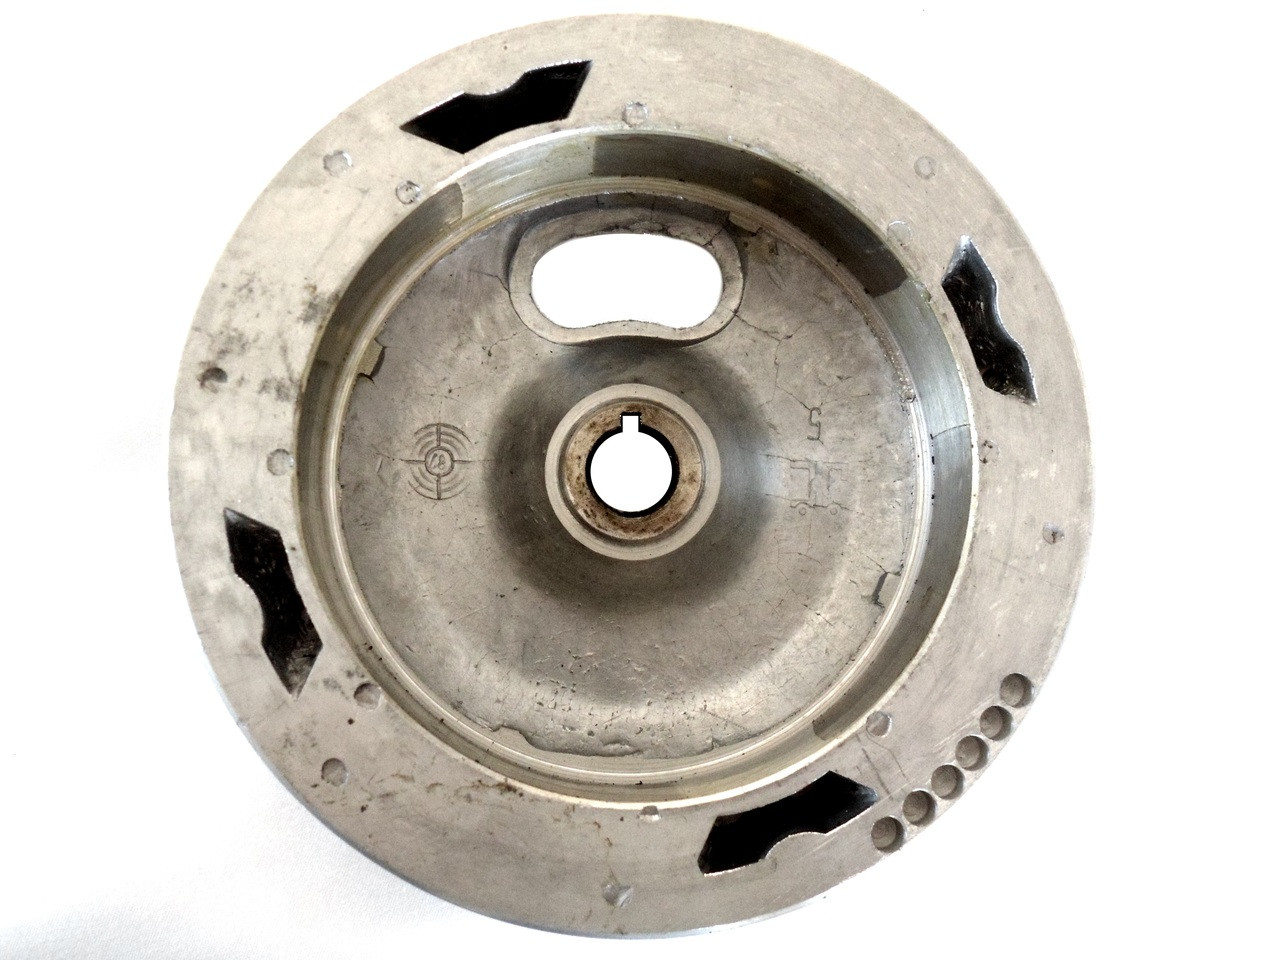 Original Kinetic Magneto Rotor / Flywheel - 19022100